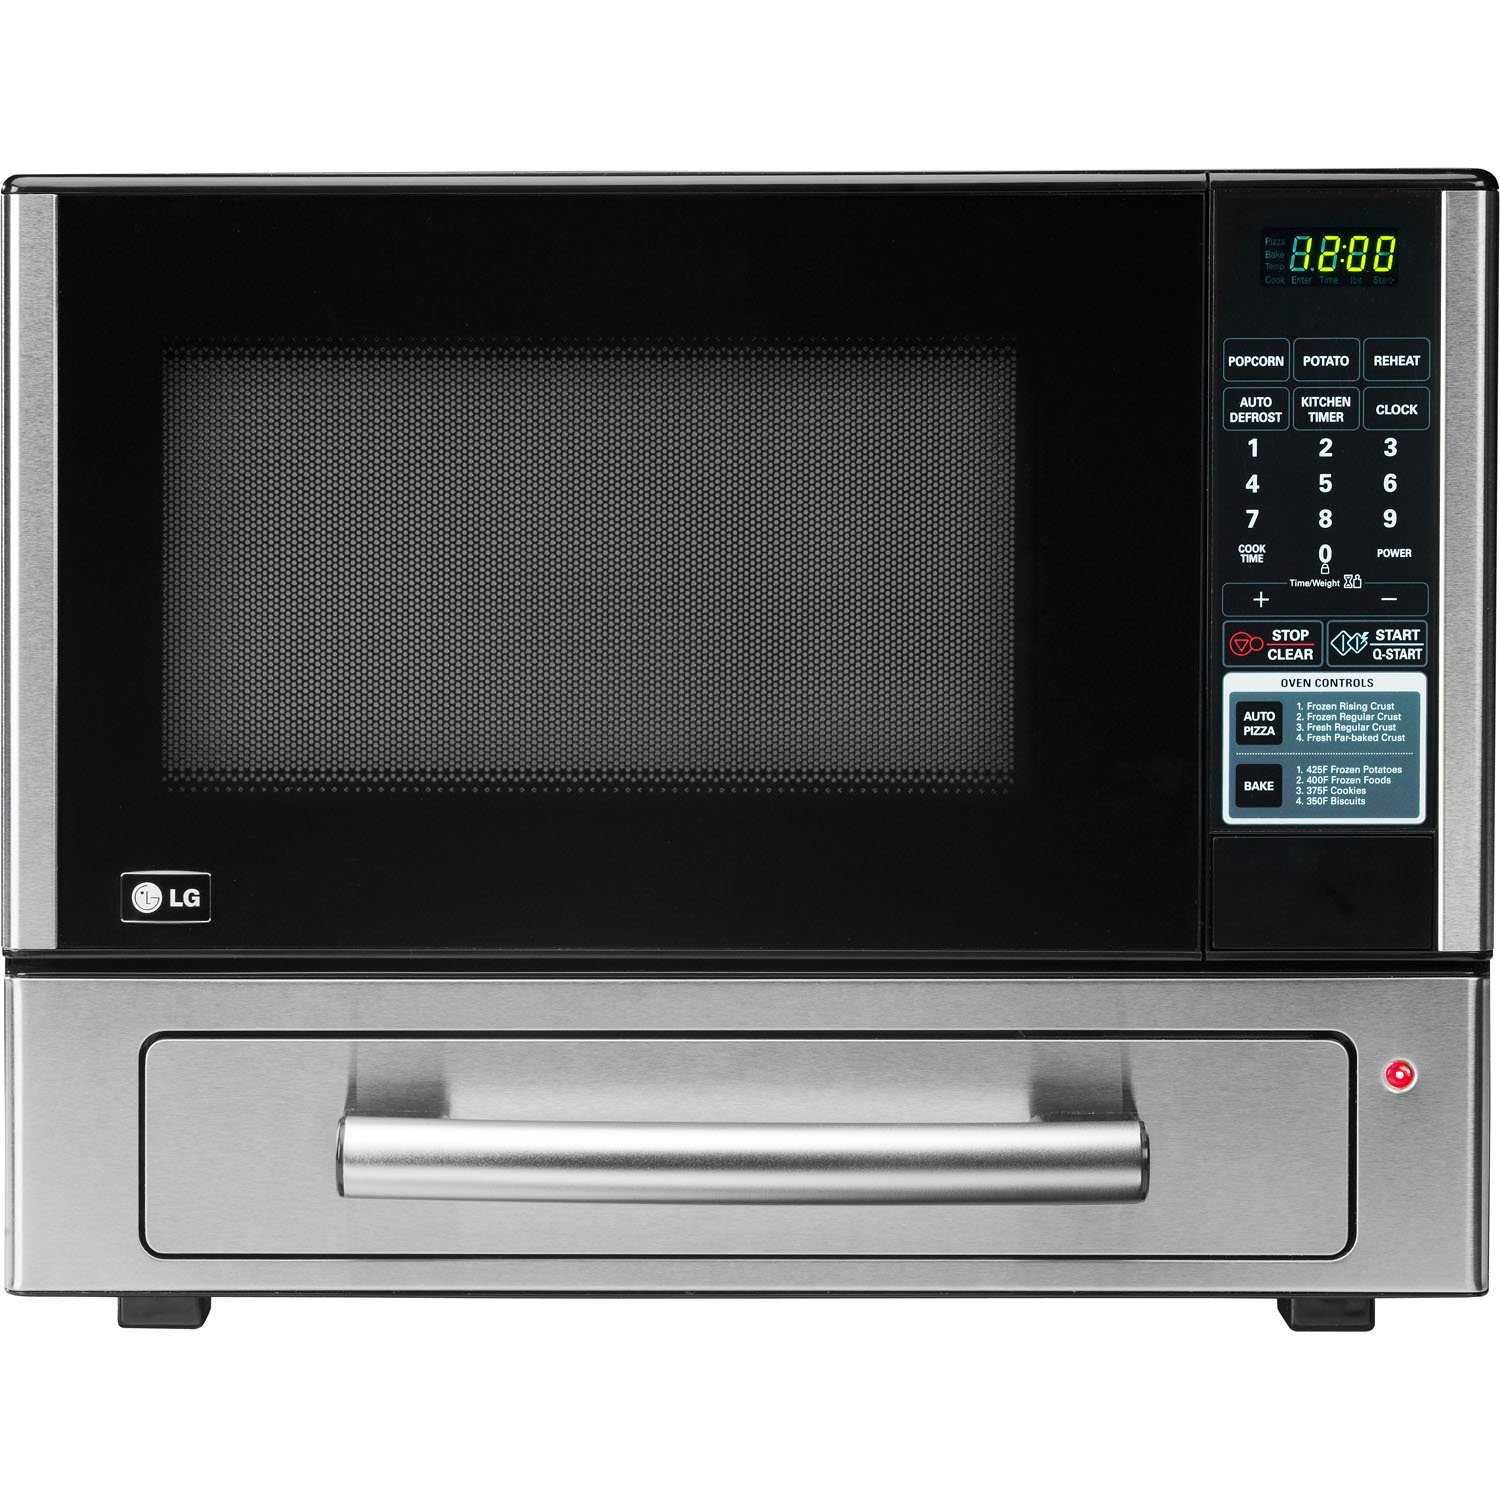 Lg S Microwave Baking Oven Fast Food Almost Anywhere